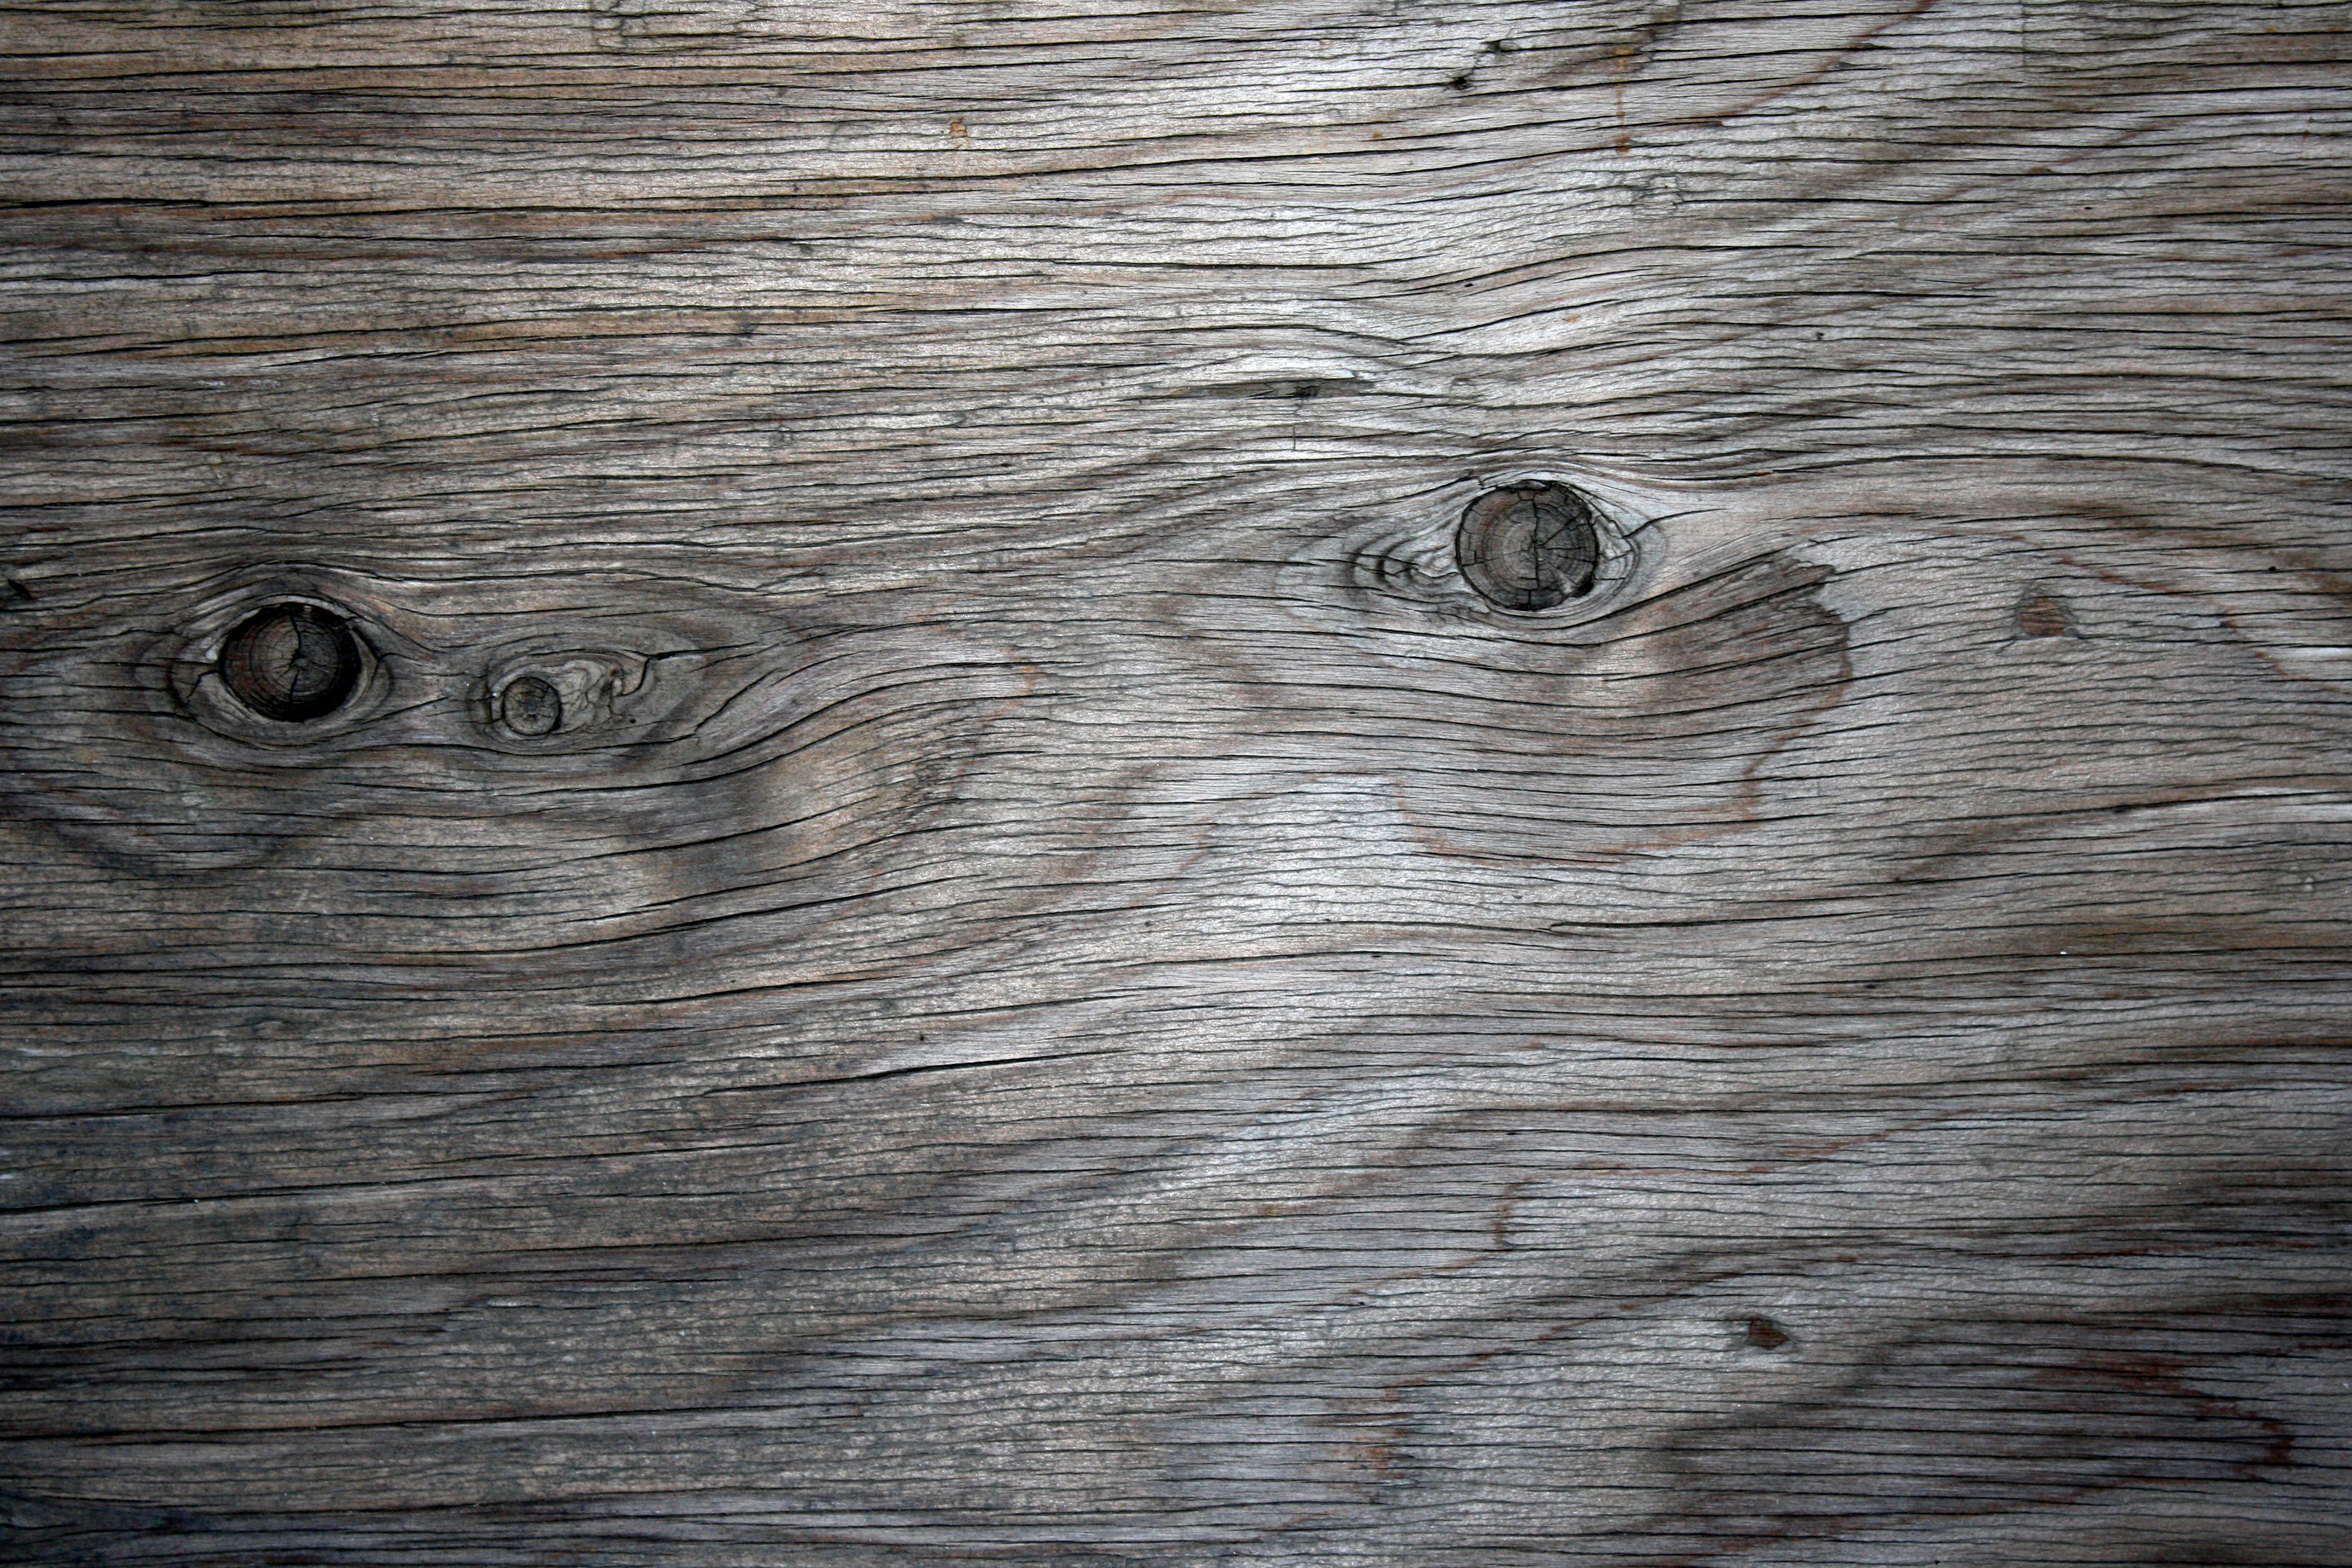 Weathered Wood Plank Wallpaper.